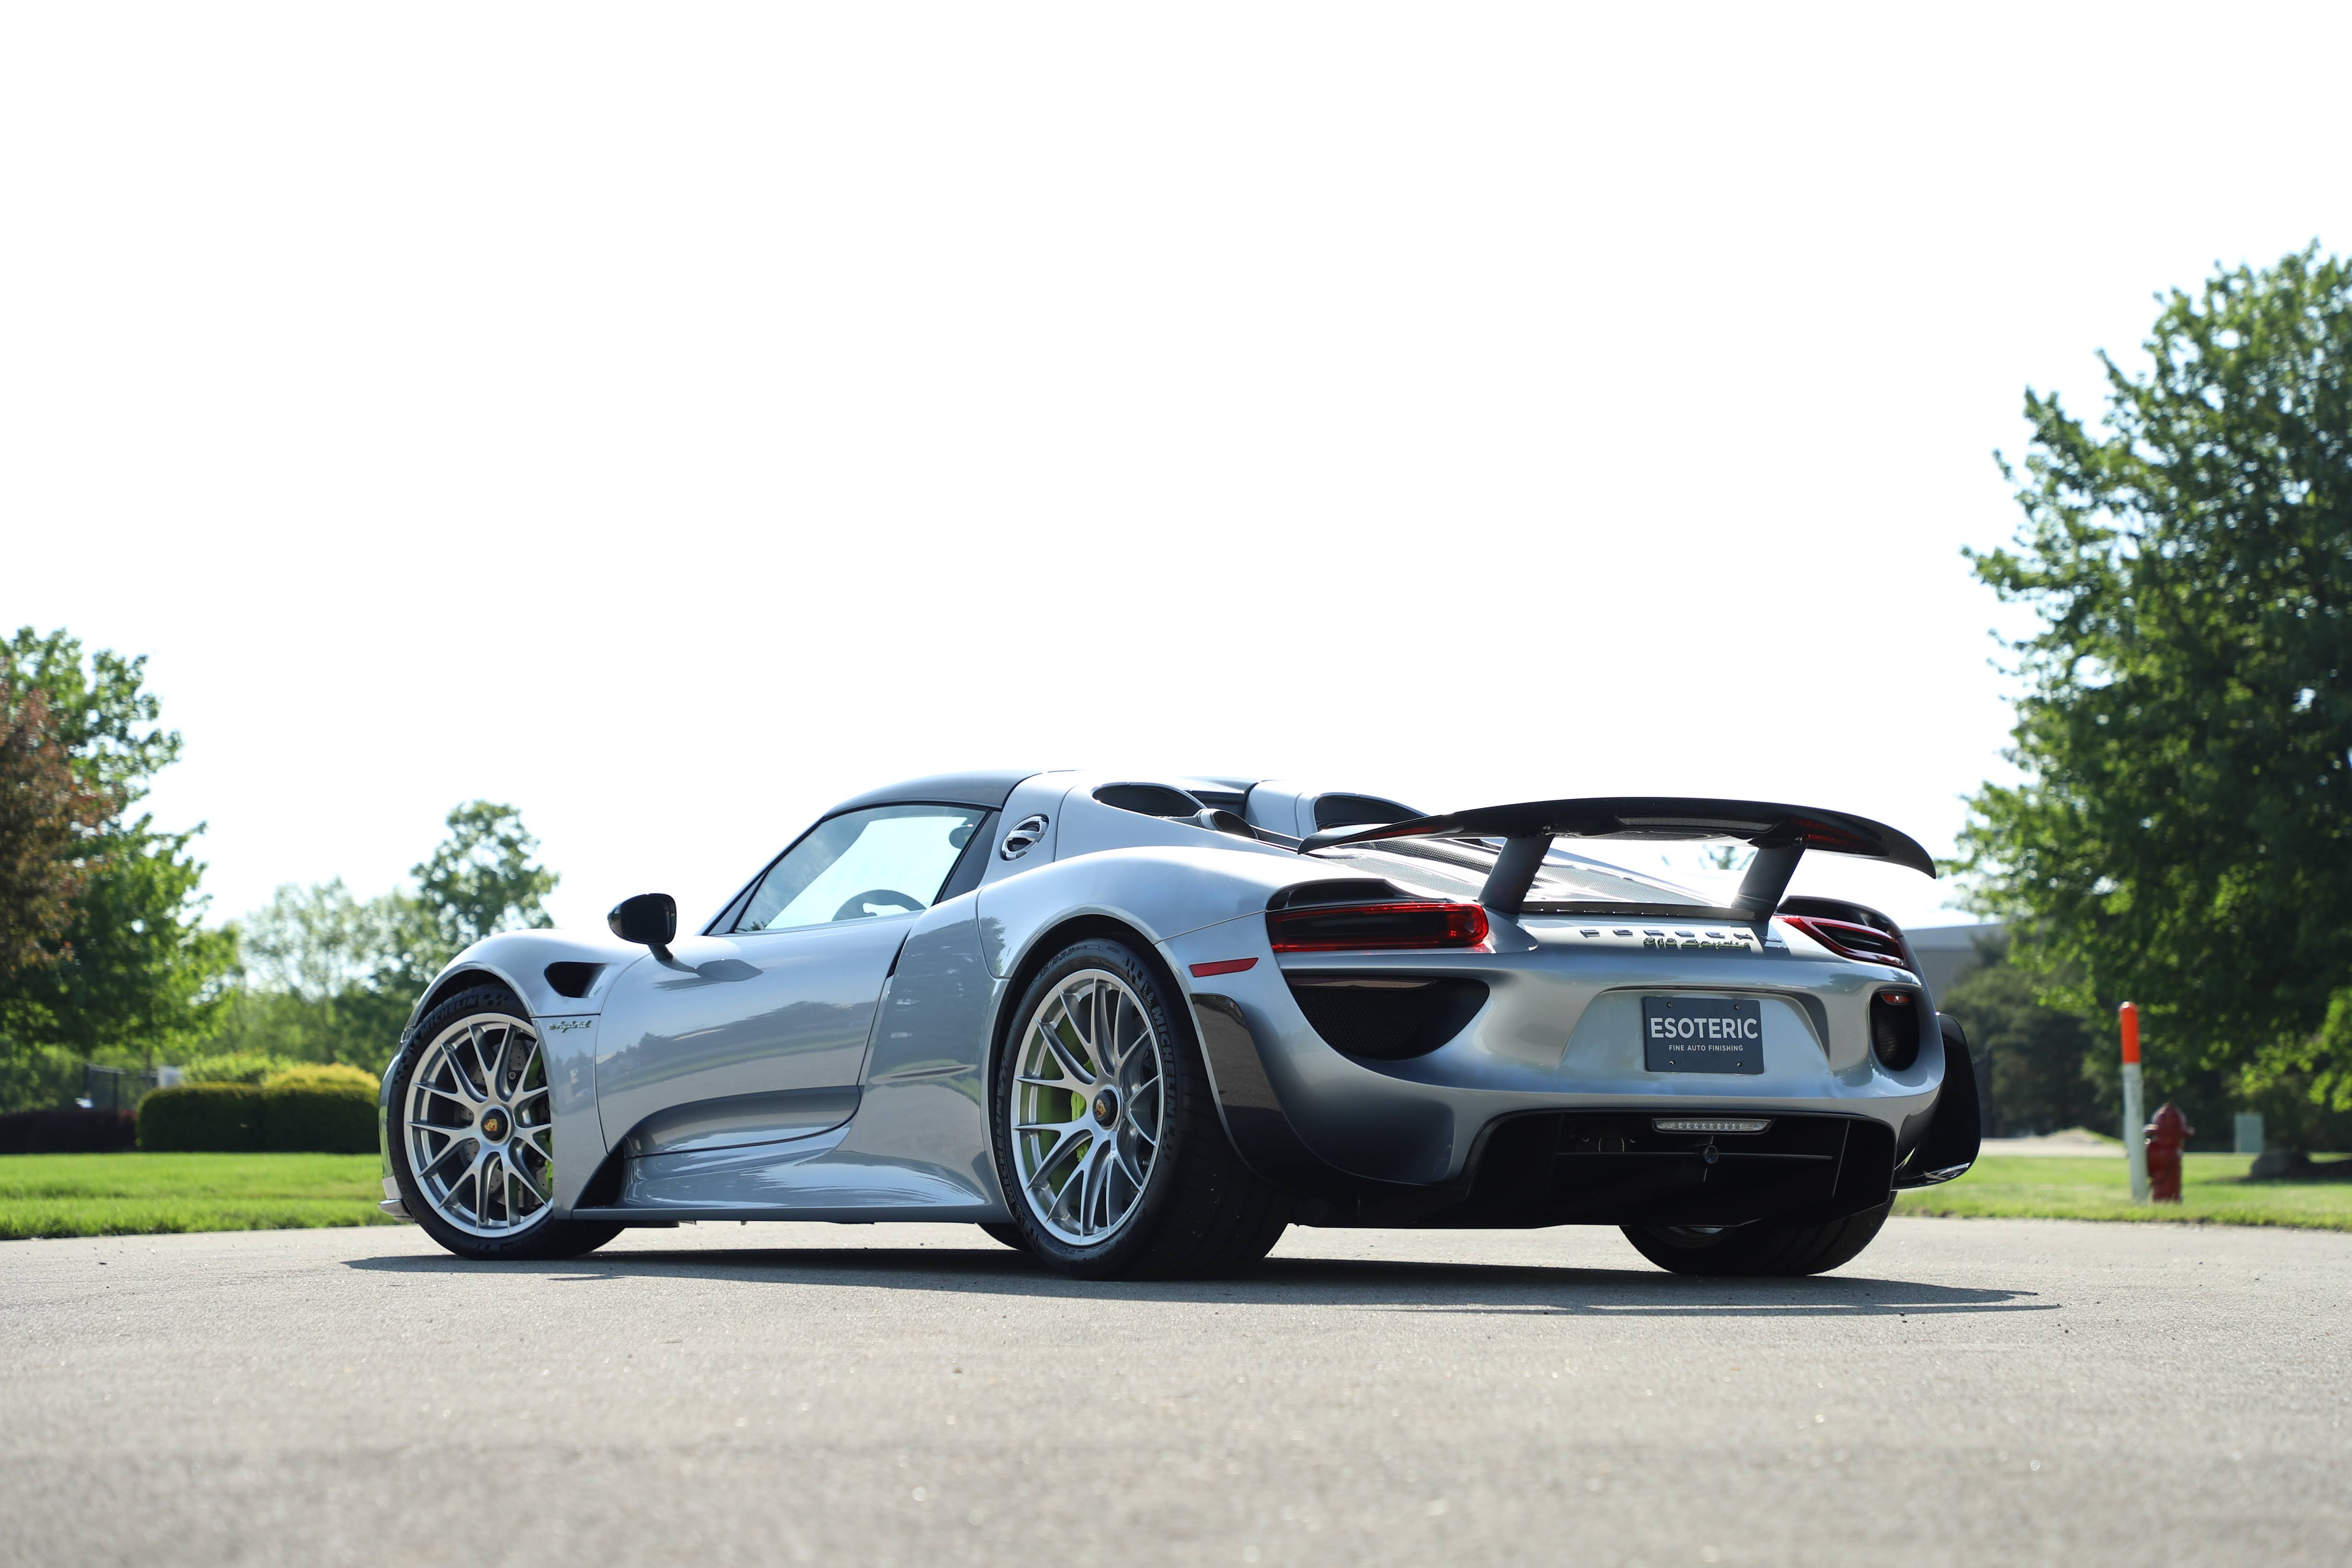 Porsche 918 full paint protection film wrap at ESOTERIC Detail